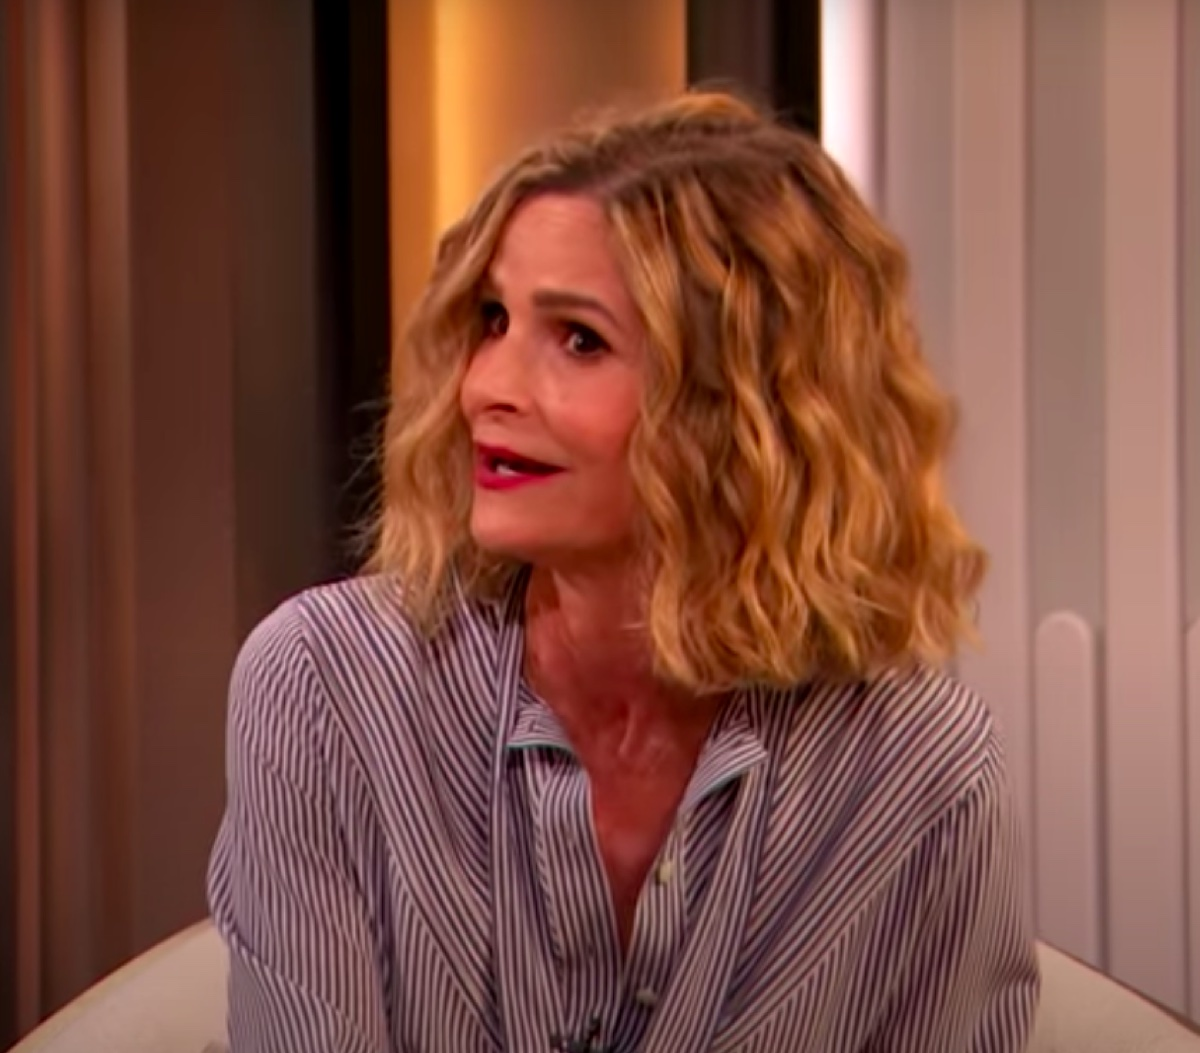 Kyra Sedgwick on The Drew Barrymore Show